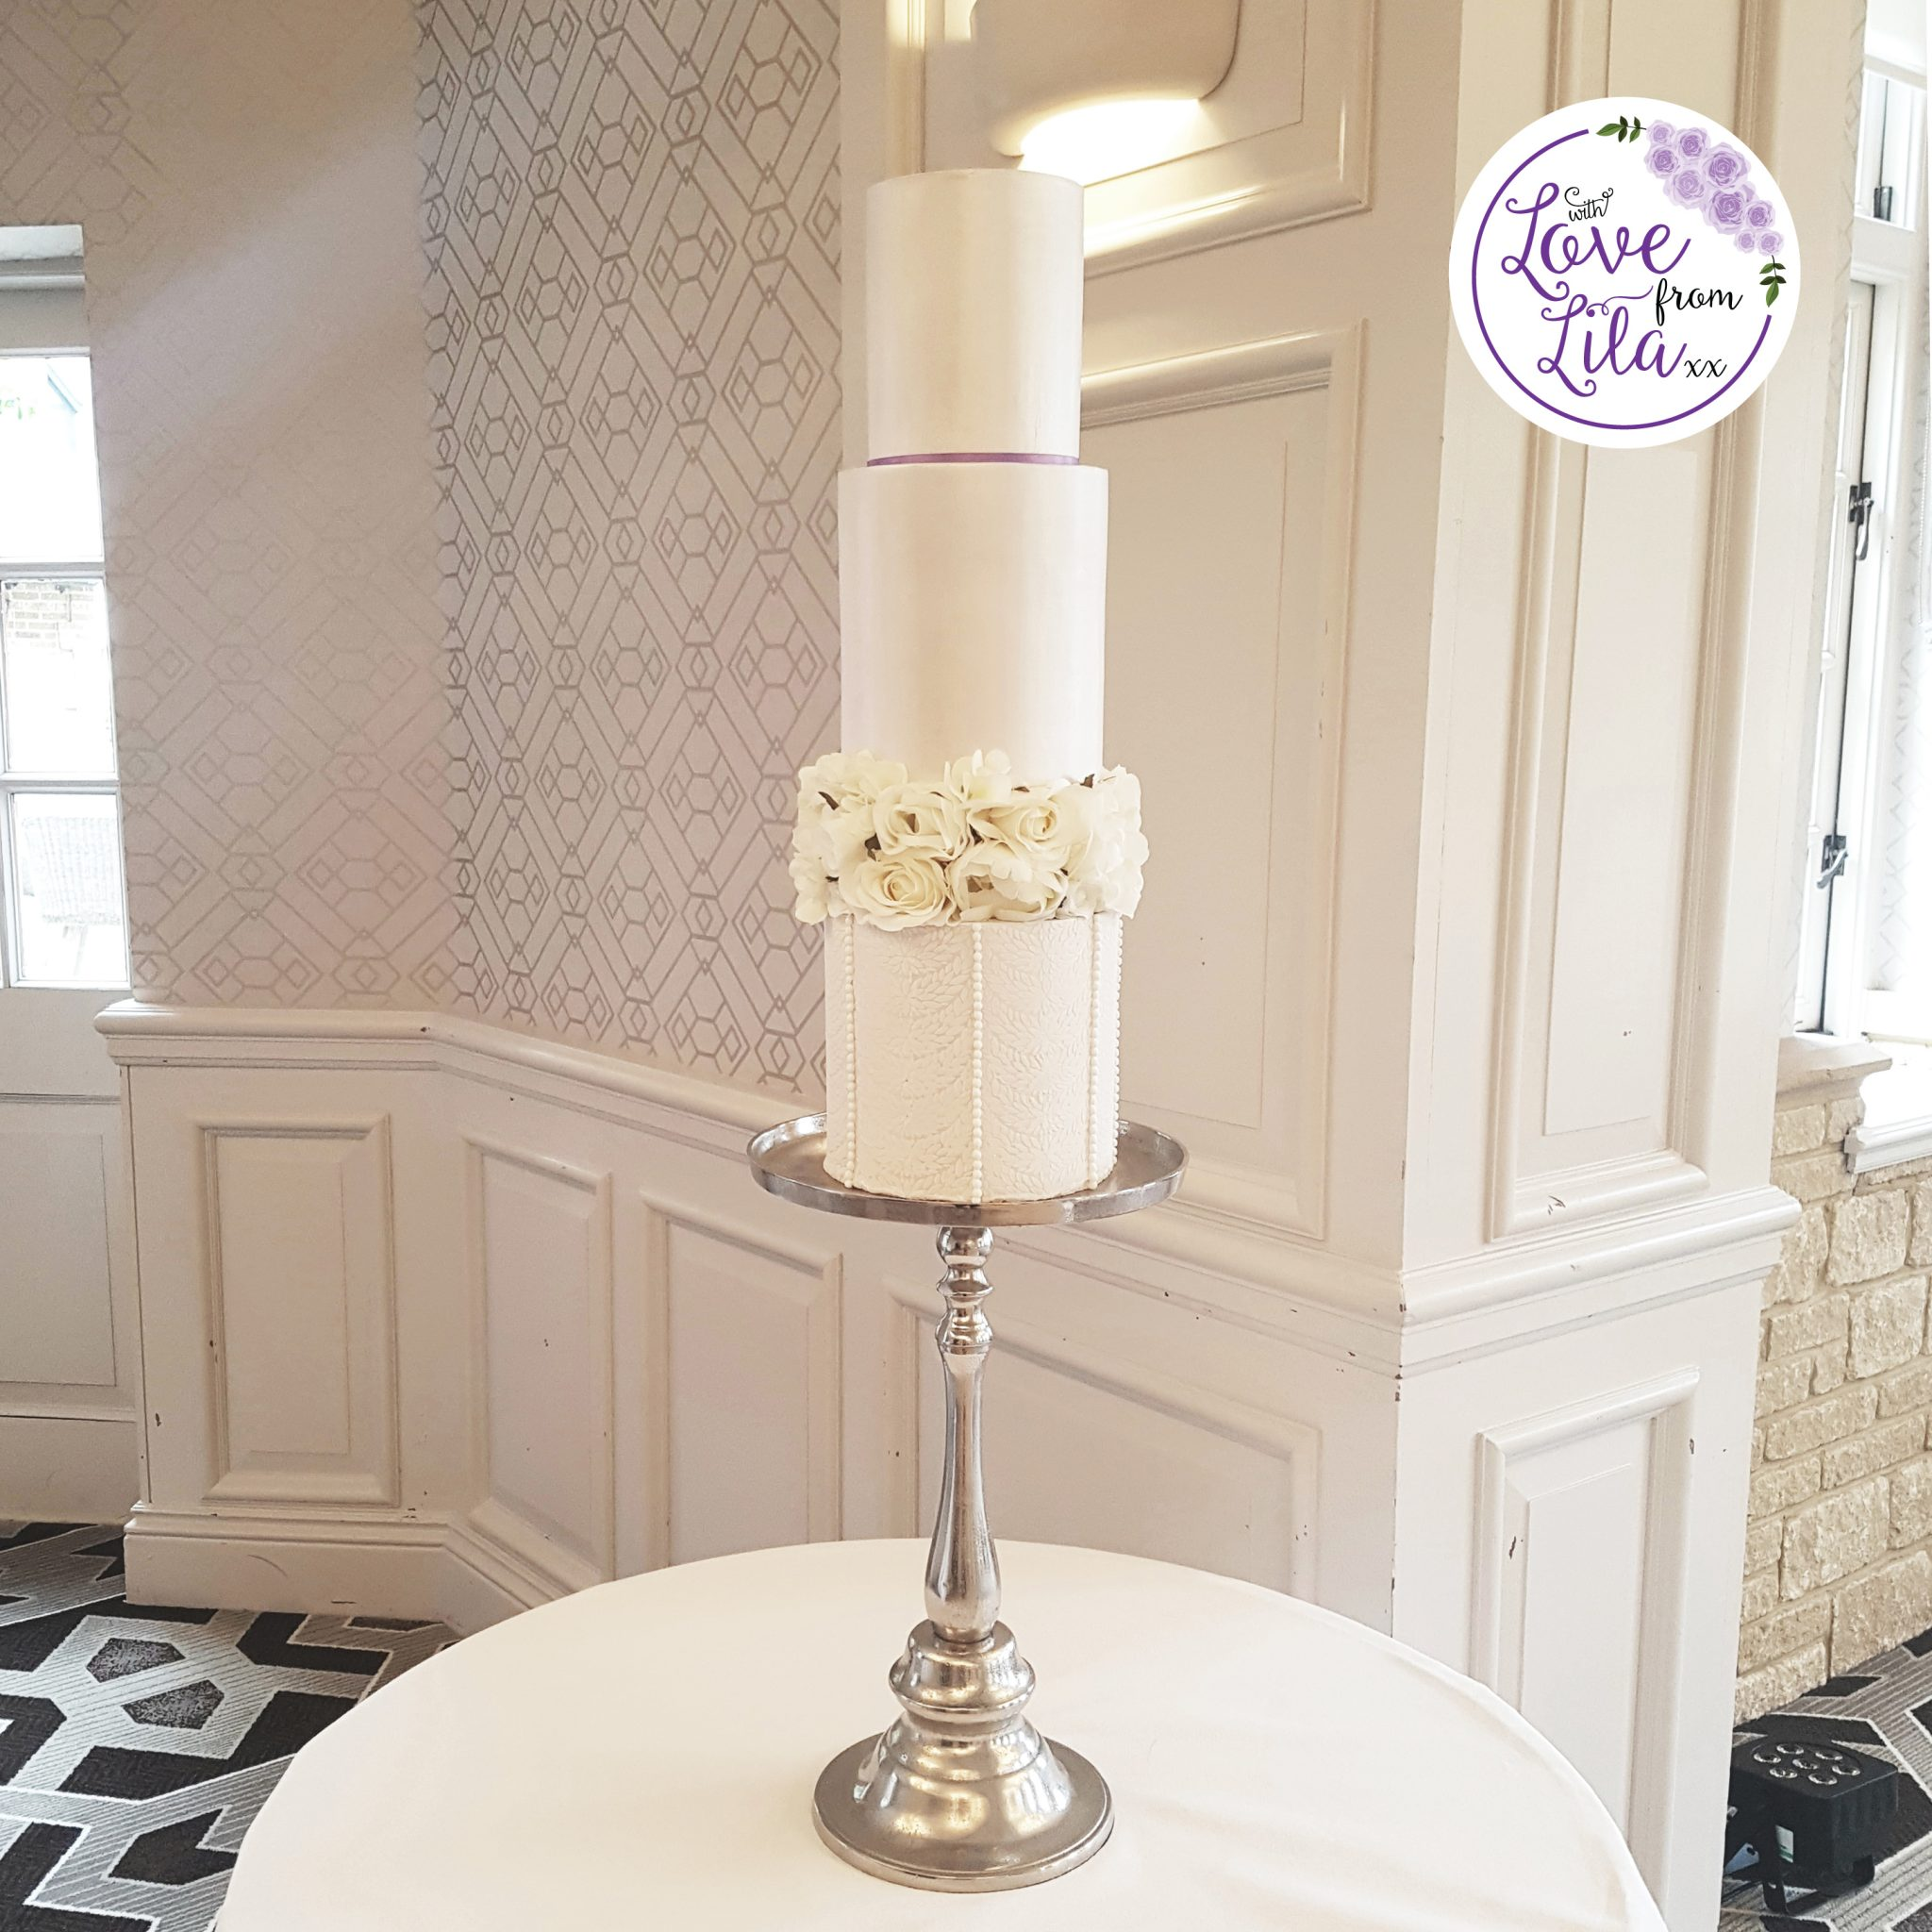 Love from lila xx - Pennyhill Park Wedding Cake